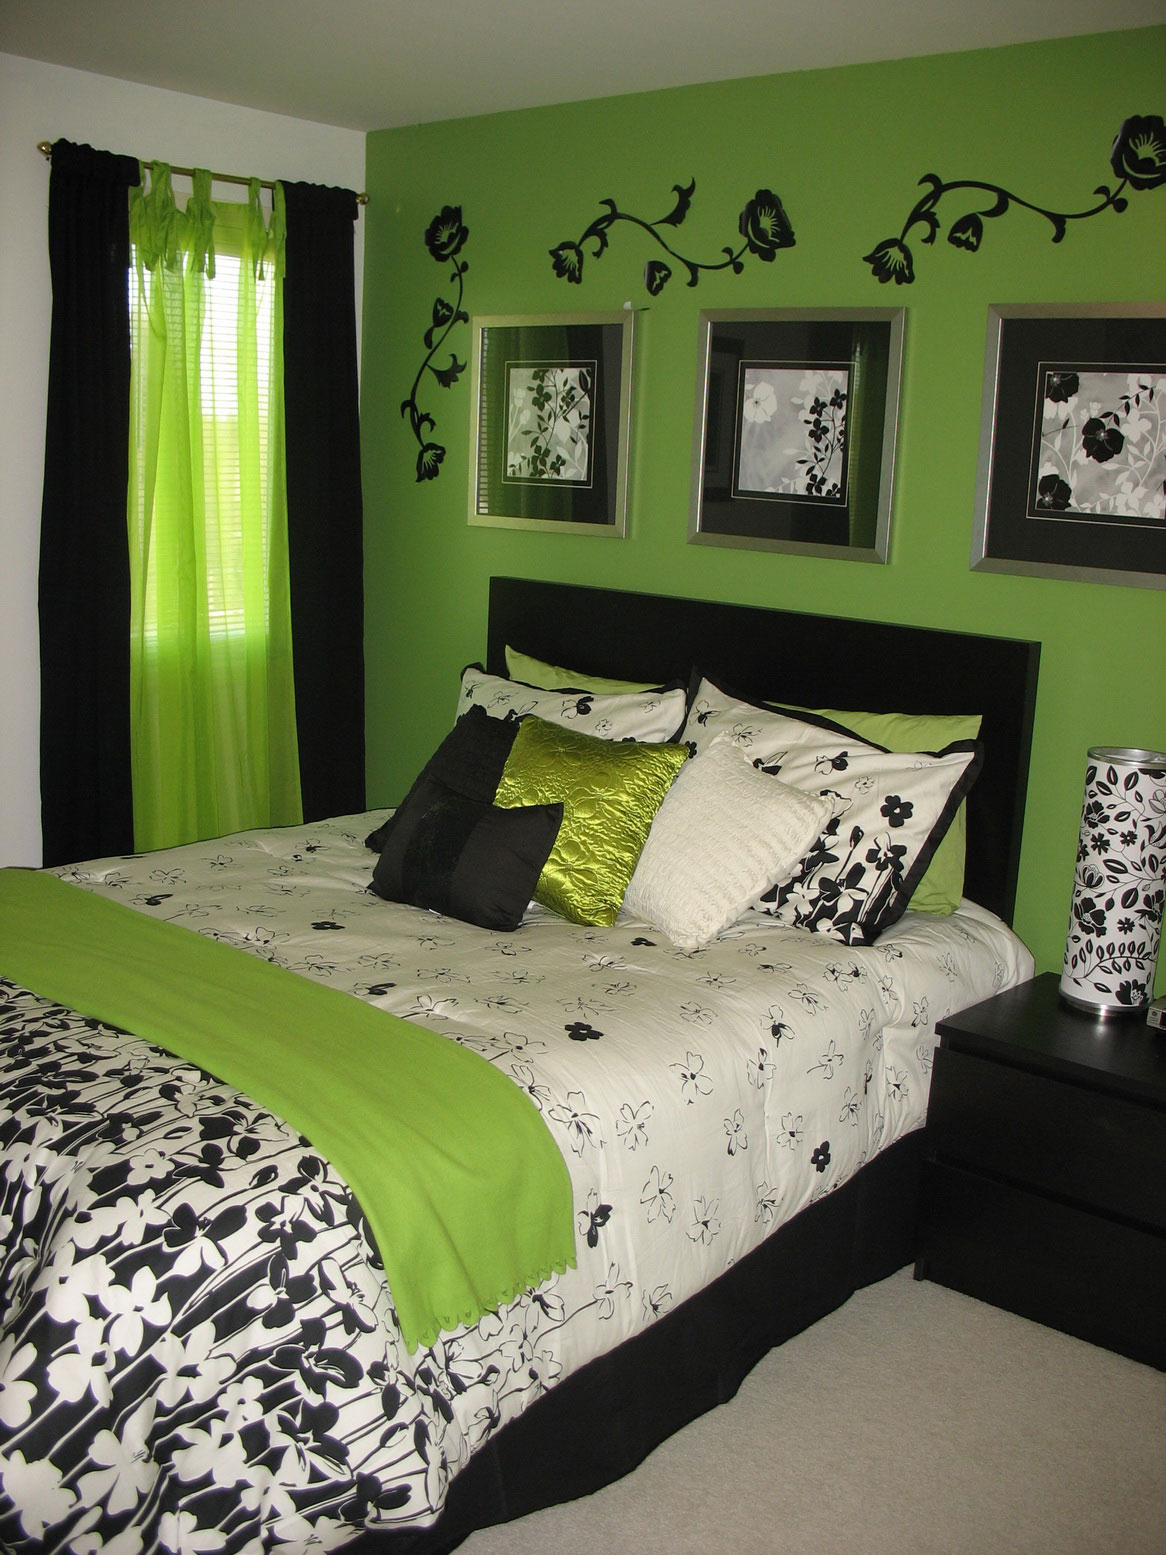 Bedroom ideas for young adults homesfeed for Bedroom items